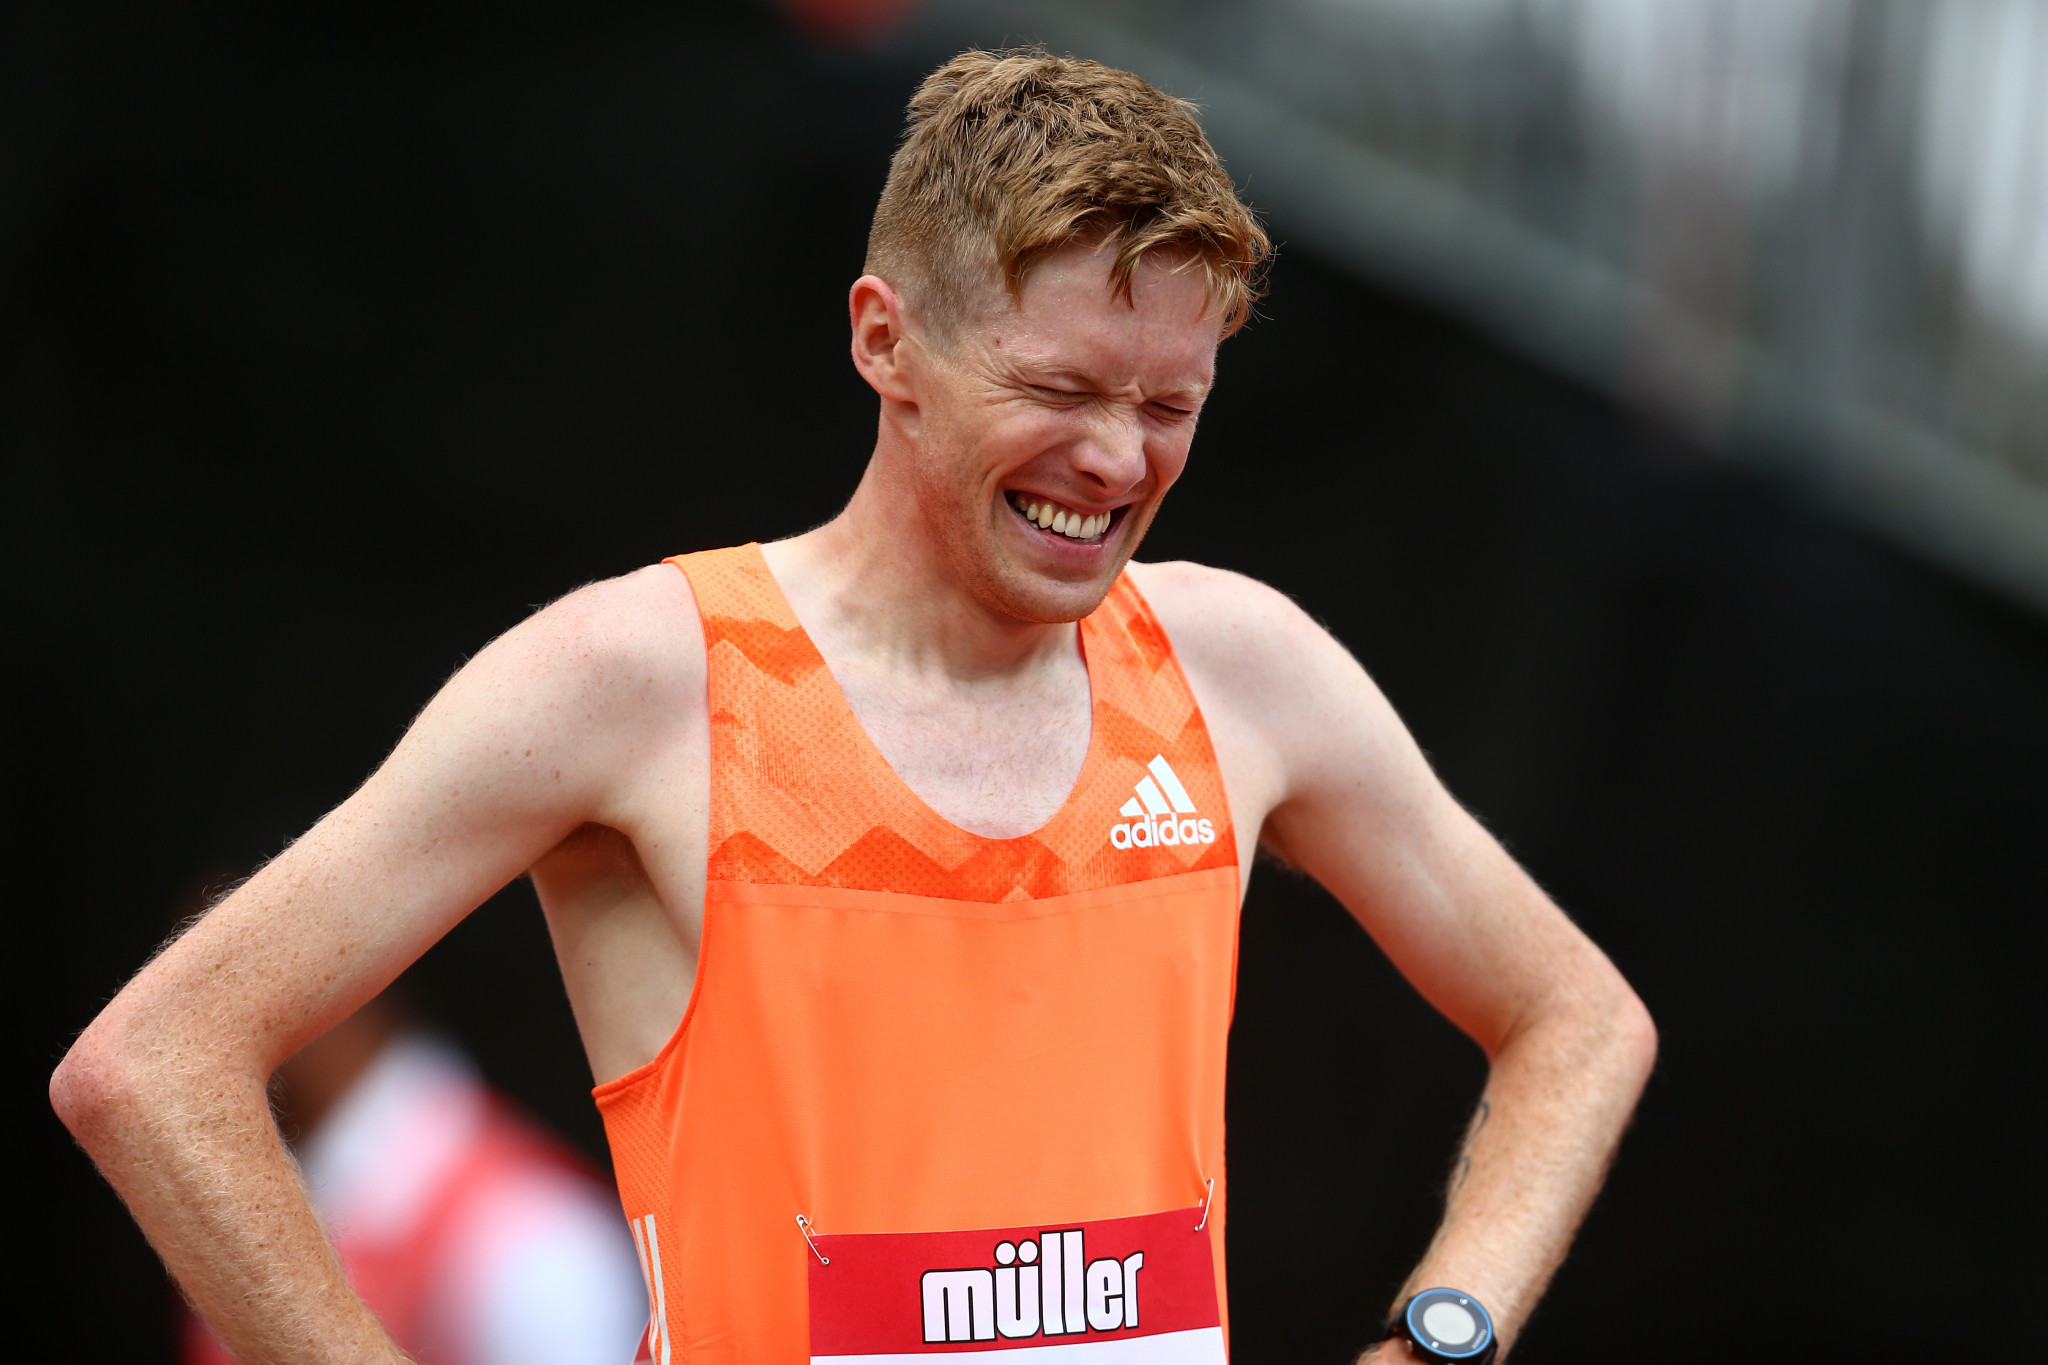 Great Britain's Tom Bosworth is one of several athletes to have criticised plans to shorten race walking events ©Getty Images